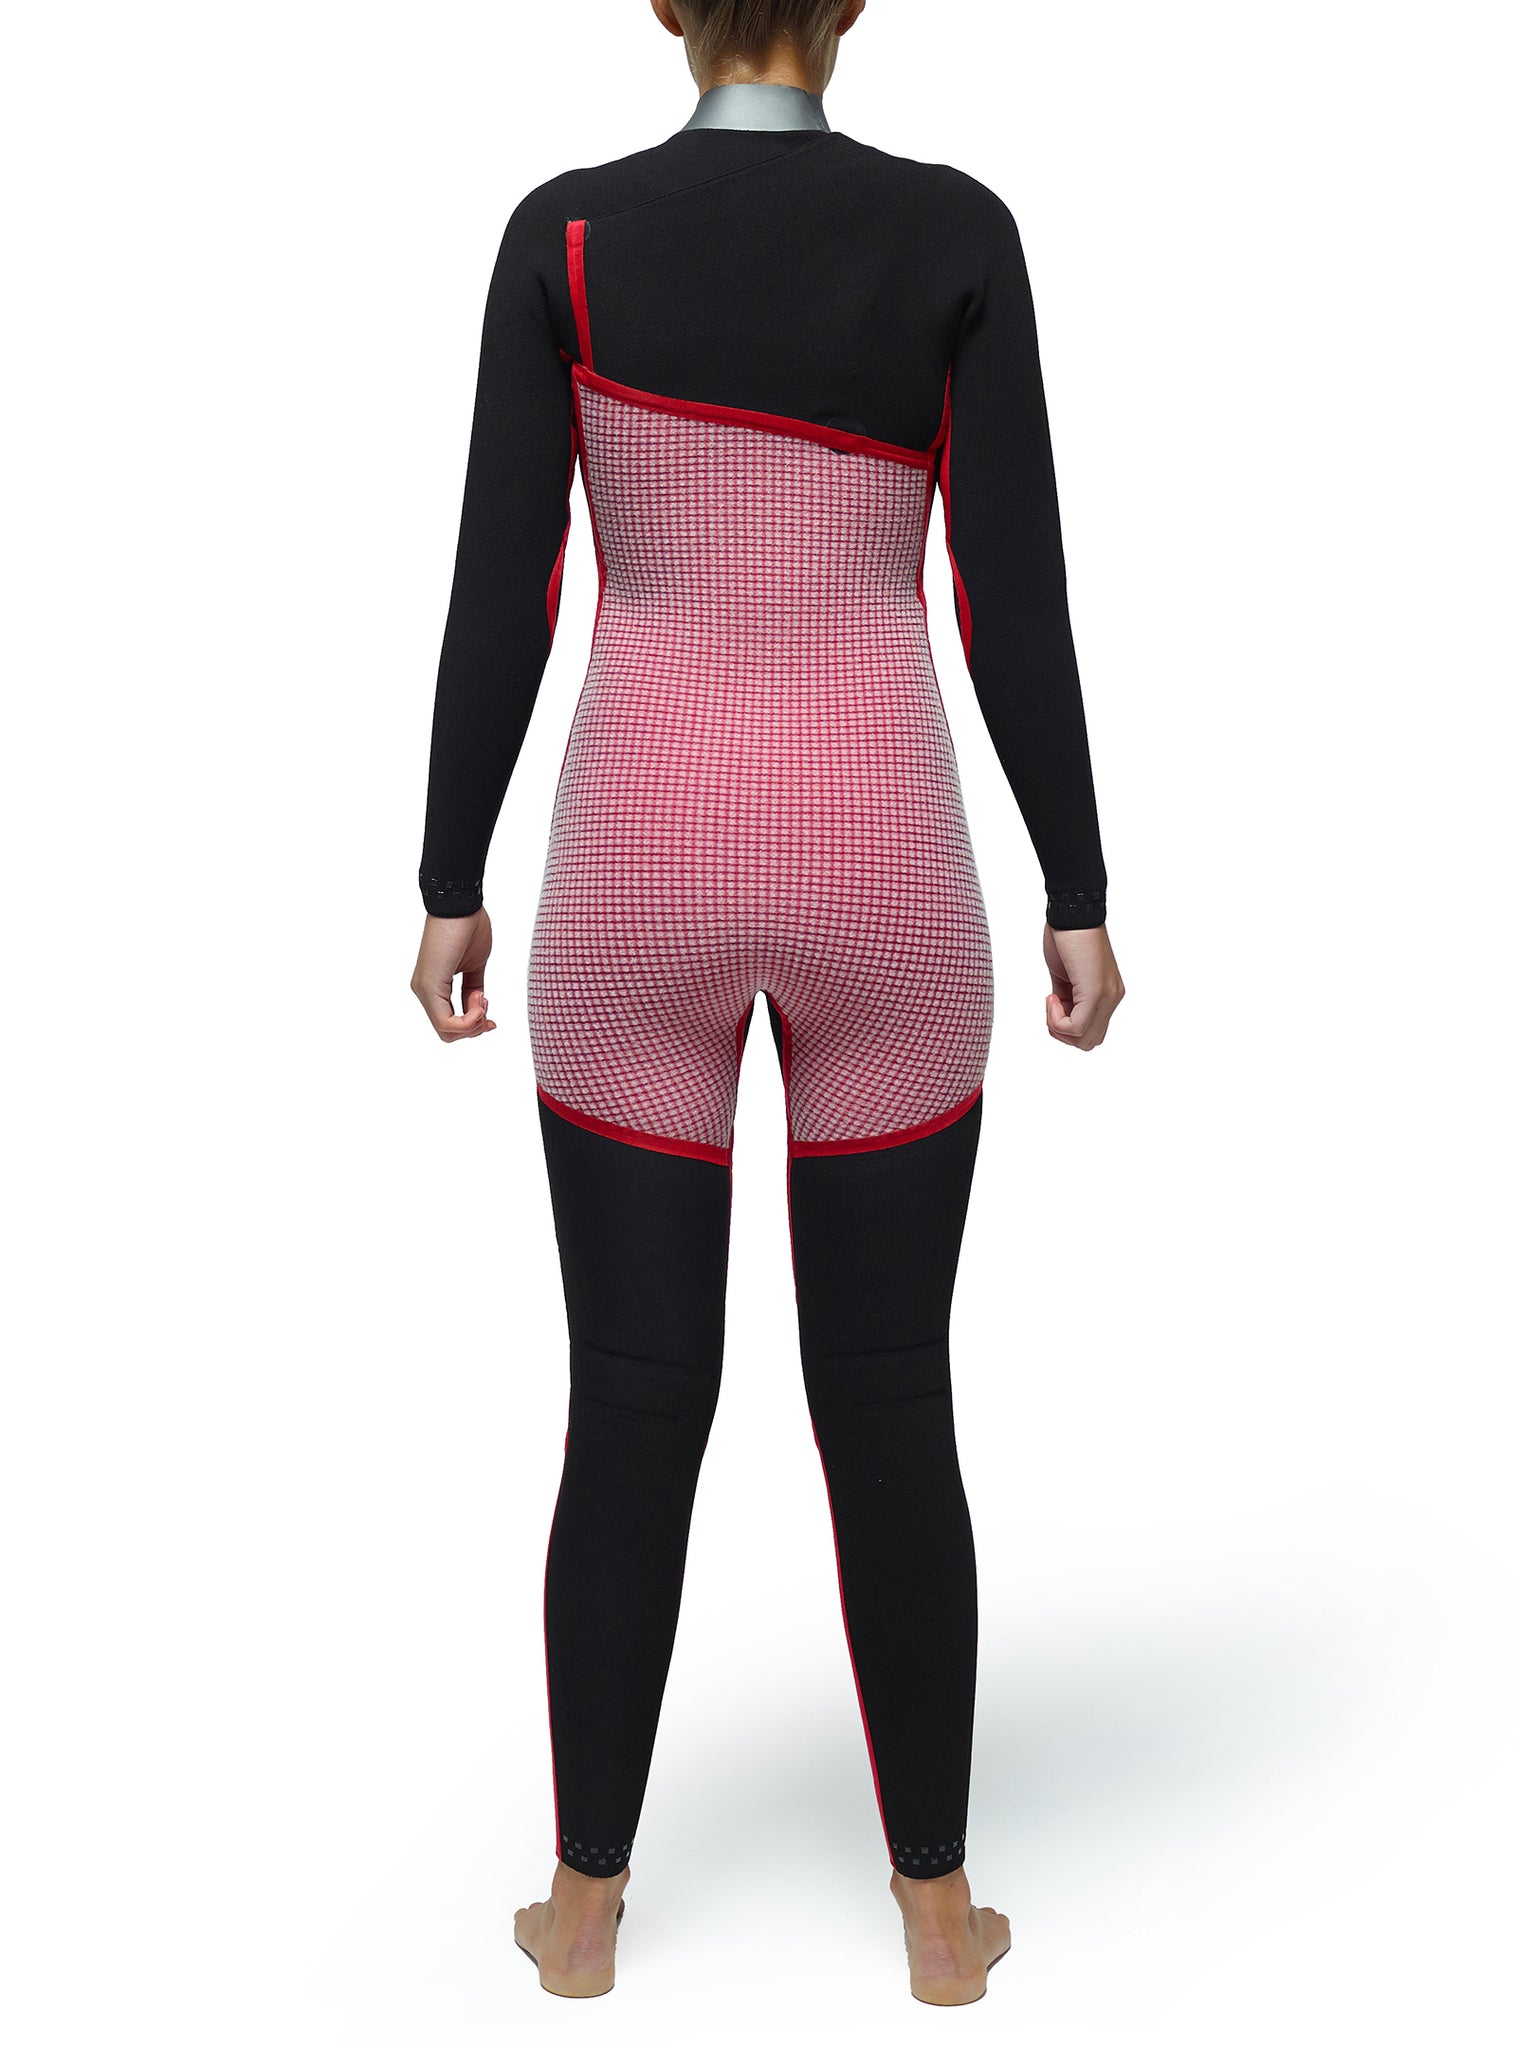 Wetsuit Woman Competition 4/3 Zipperless Black